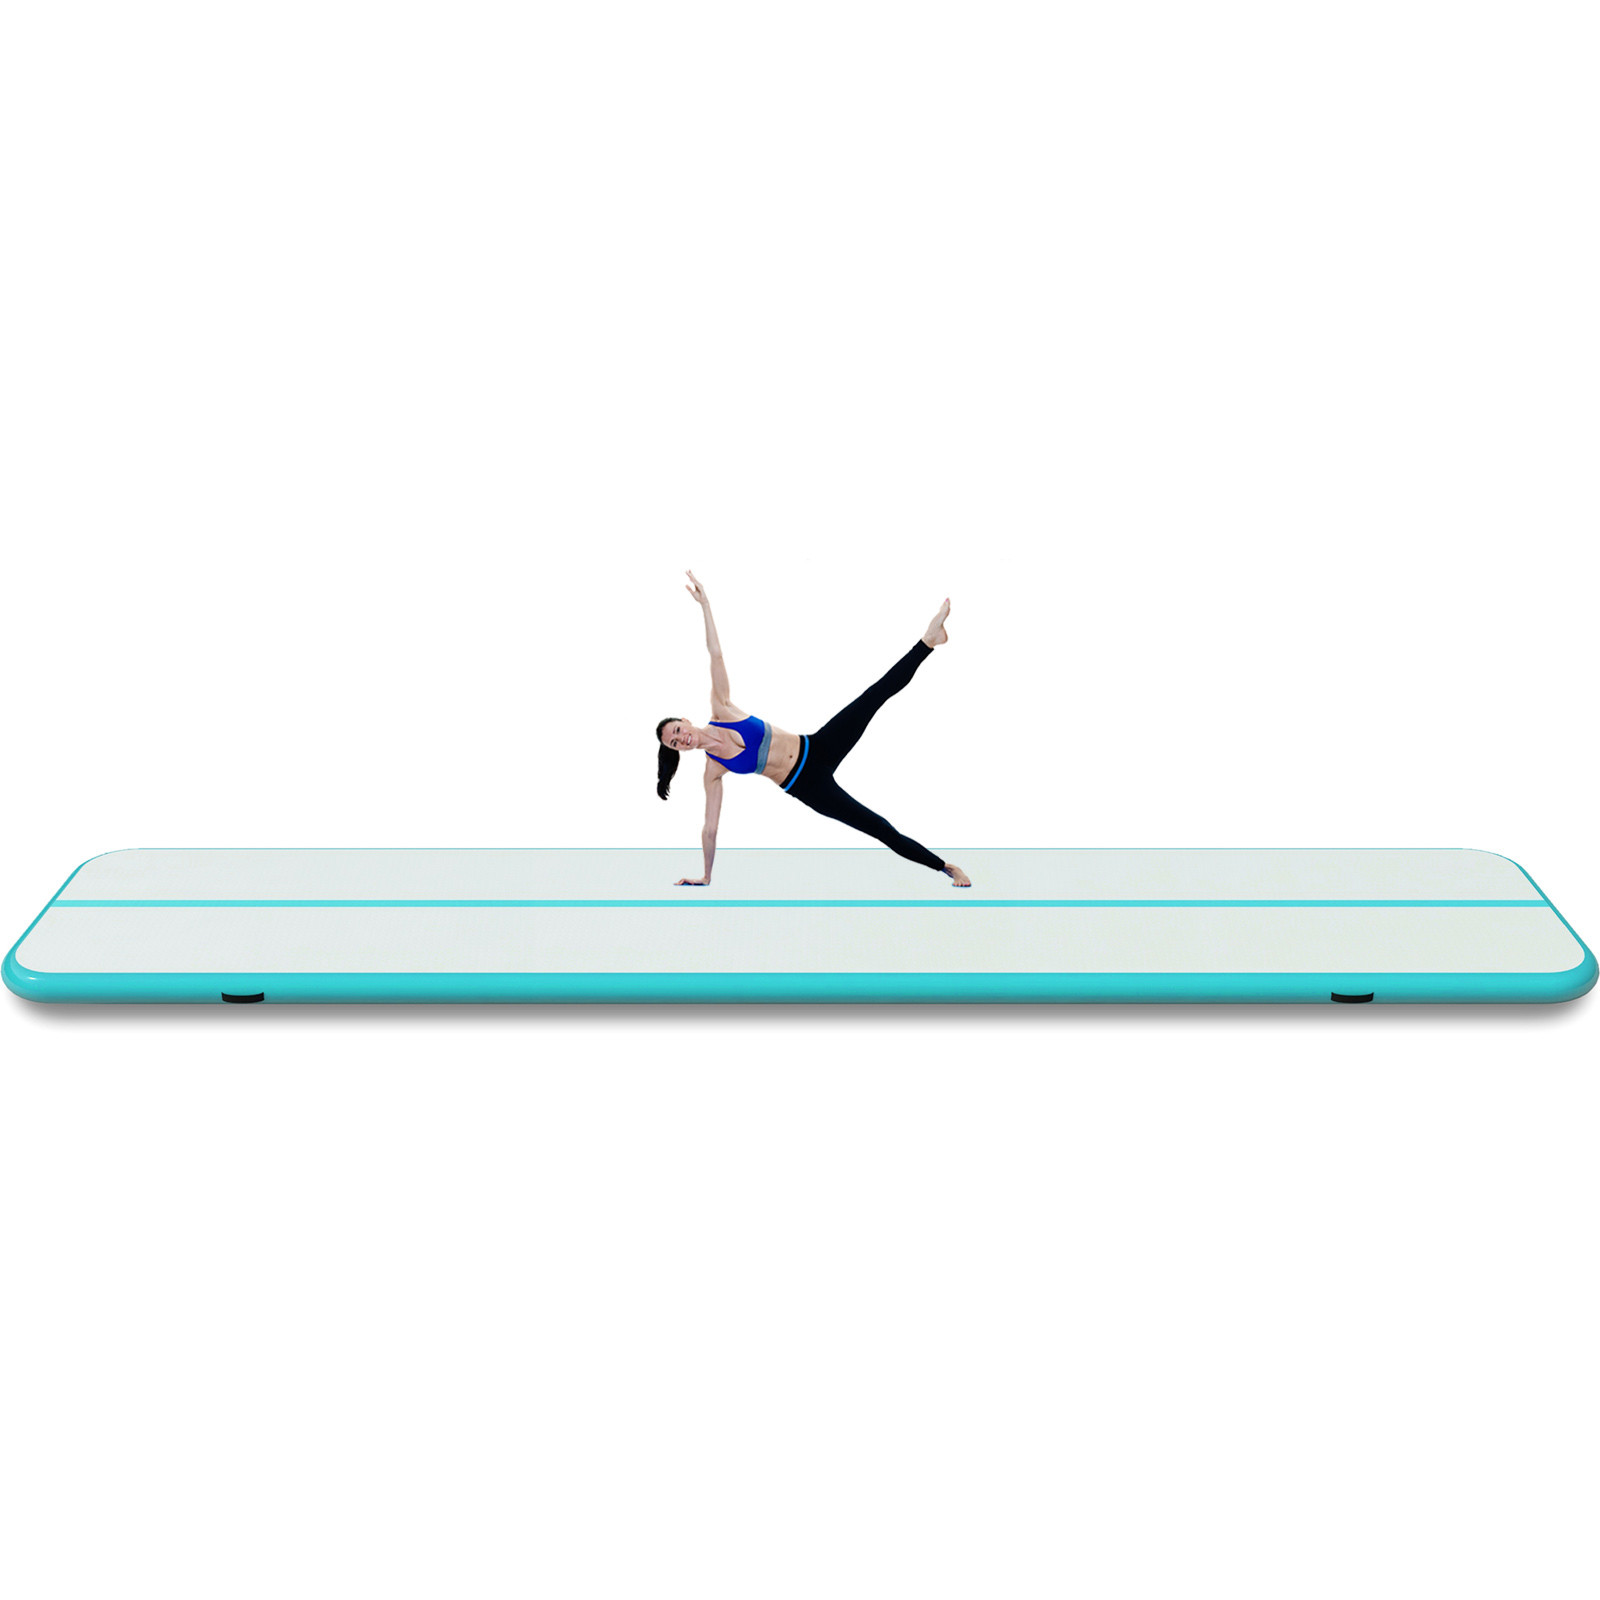 4-12M-Tapis-de-Gymnastique-Gonflable-Yoga-Fitness-Tapis-de-Tumbling-Airtrack miniature 118